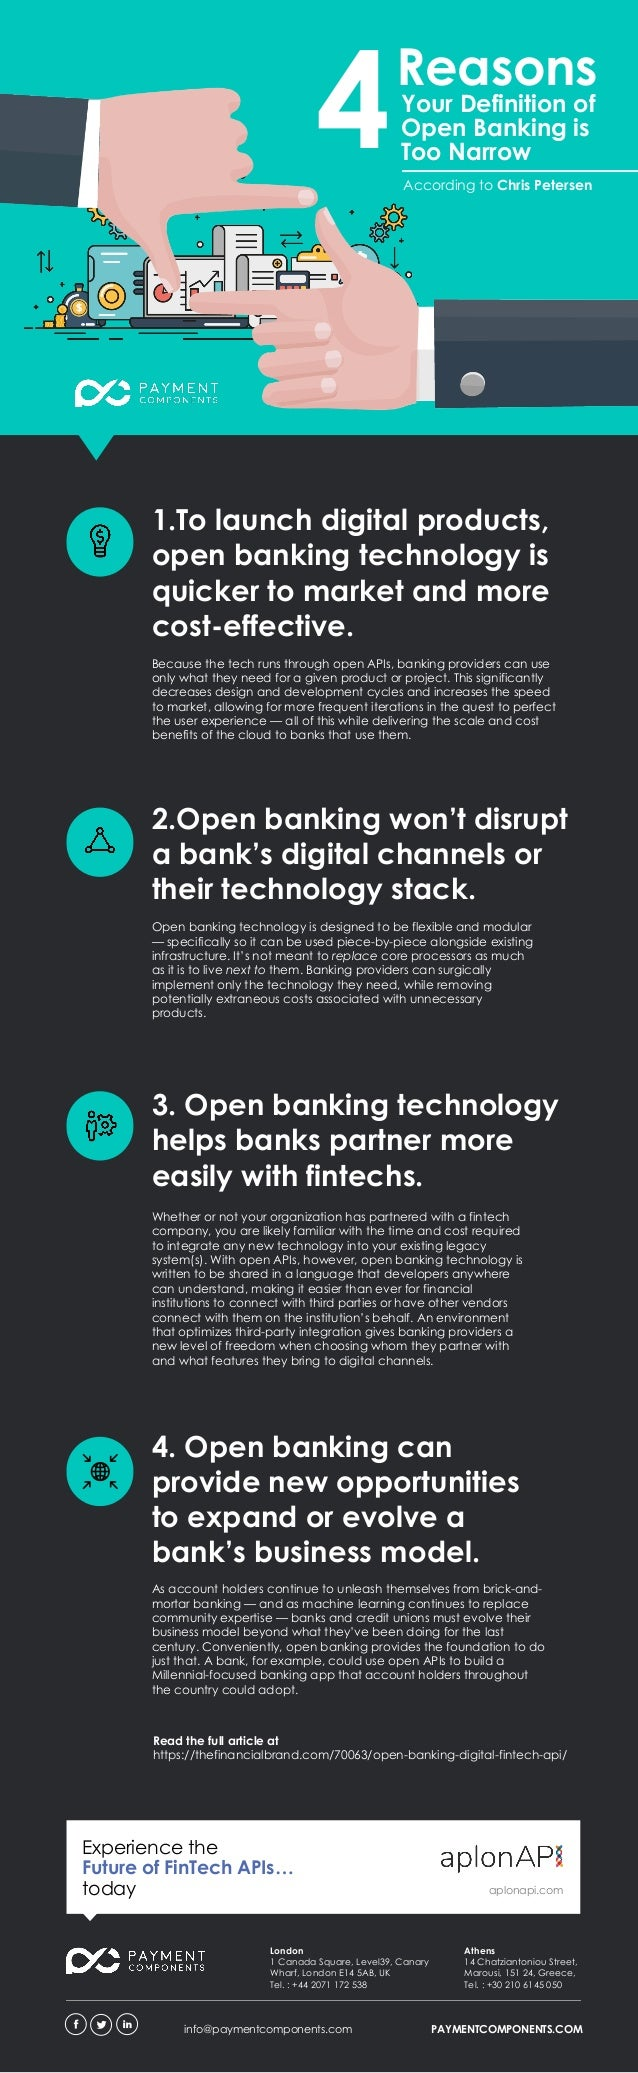 1.To launch digital products, open banking technology is quicker to market and more cost-effective. Your Definition of Ope...